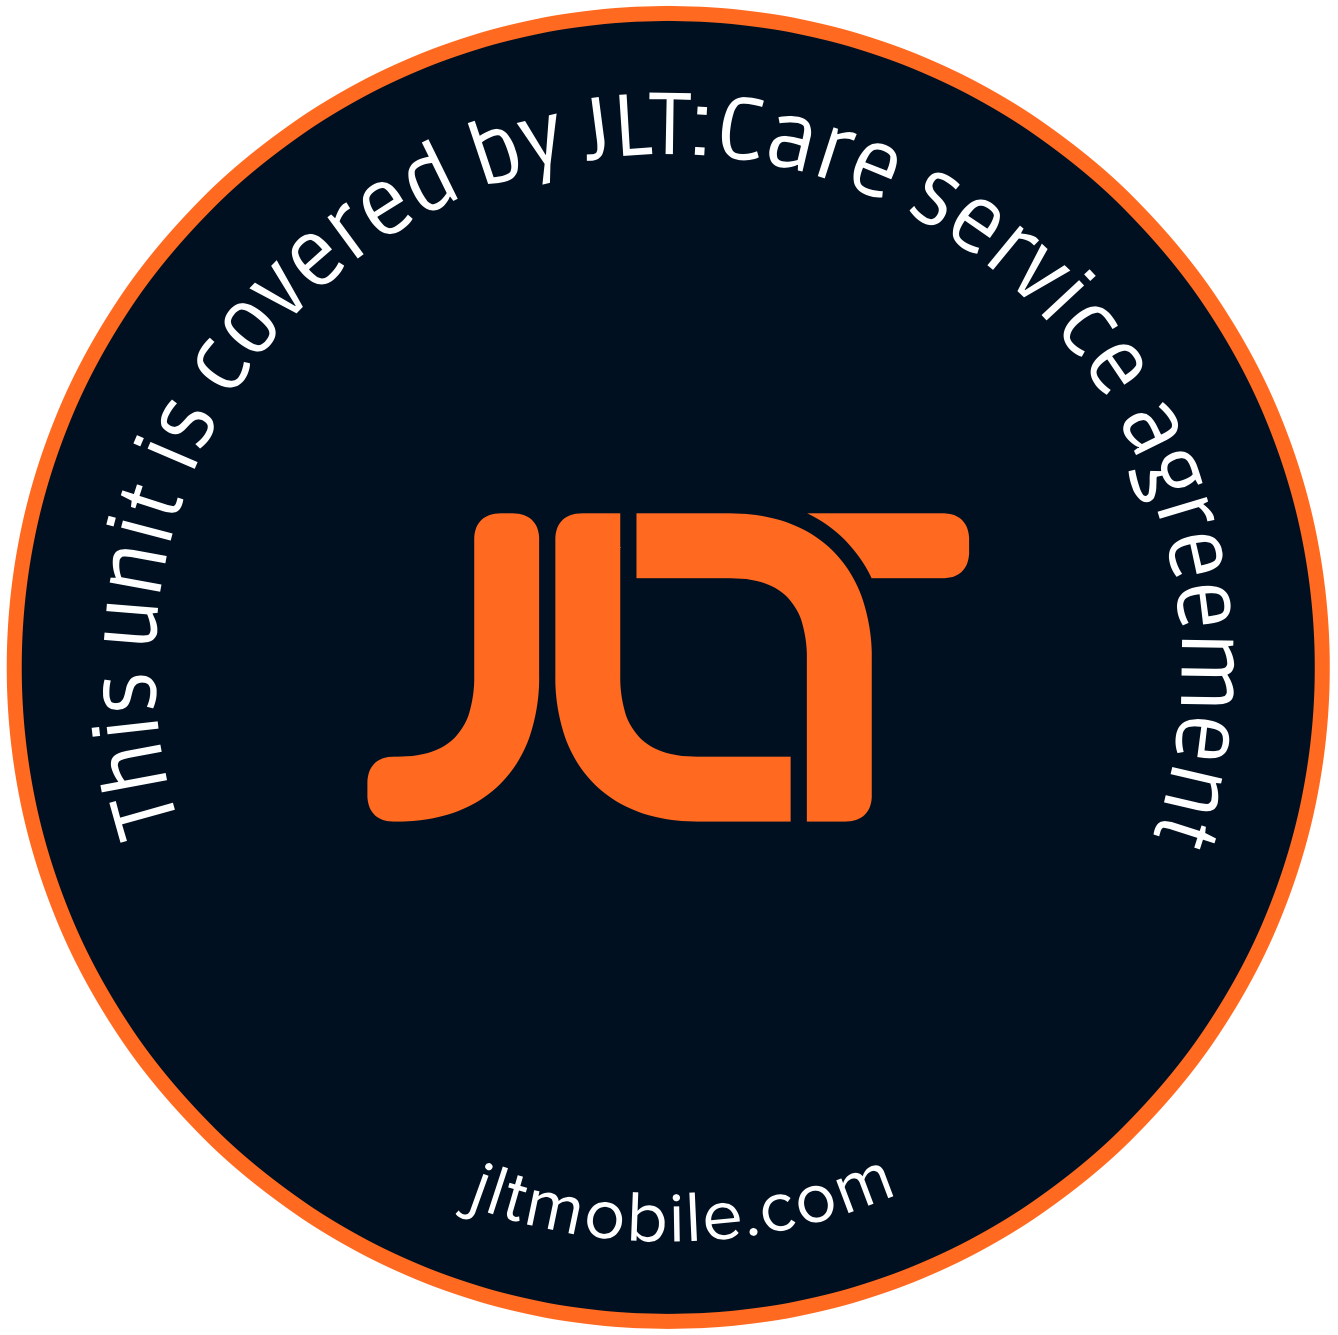 JLT_Service_Agreement_Sticker_Logo_CMYK_outline-ai